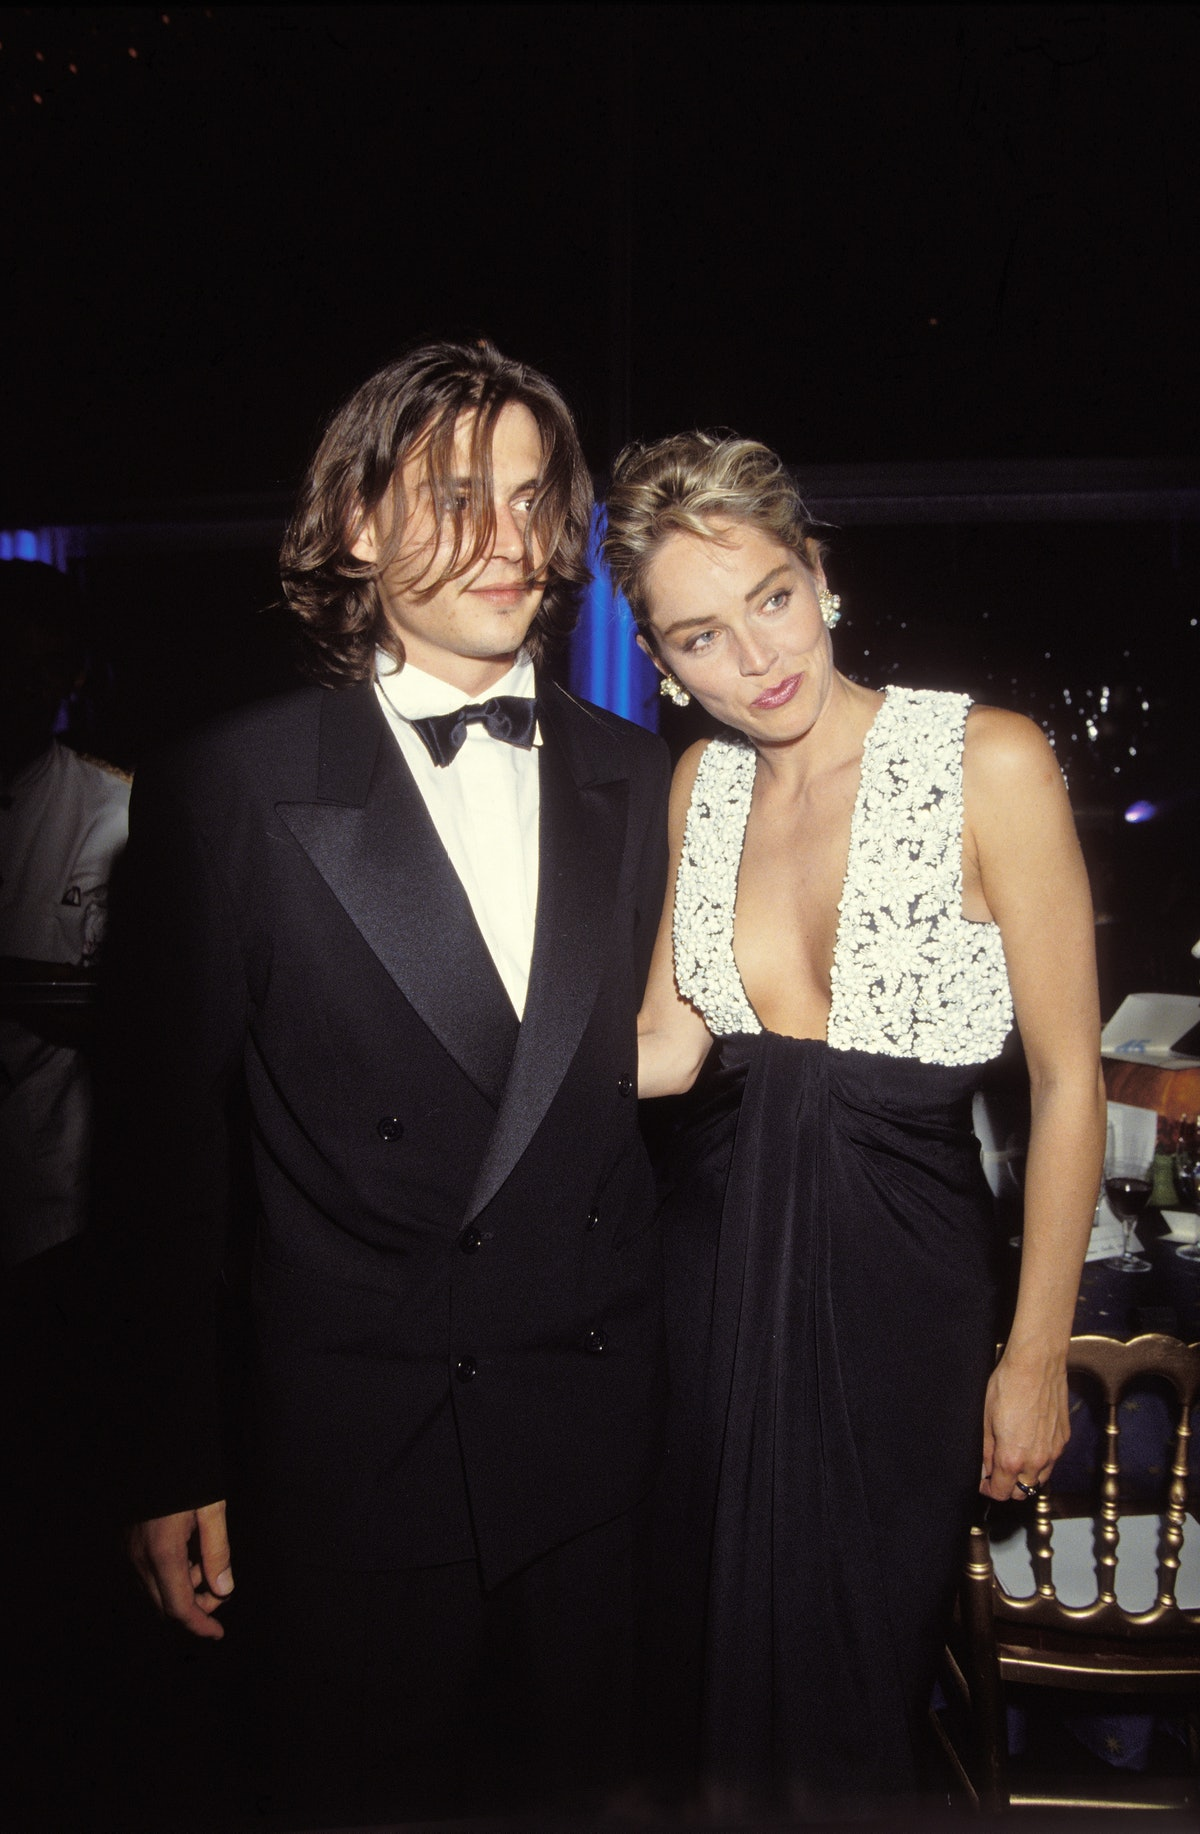 Cannes Film Festival In Cannes, France On May 01, 1992.